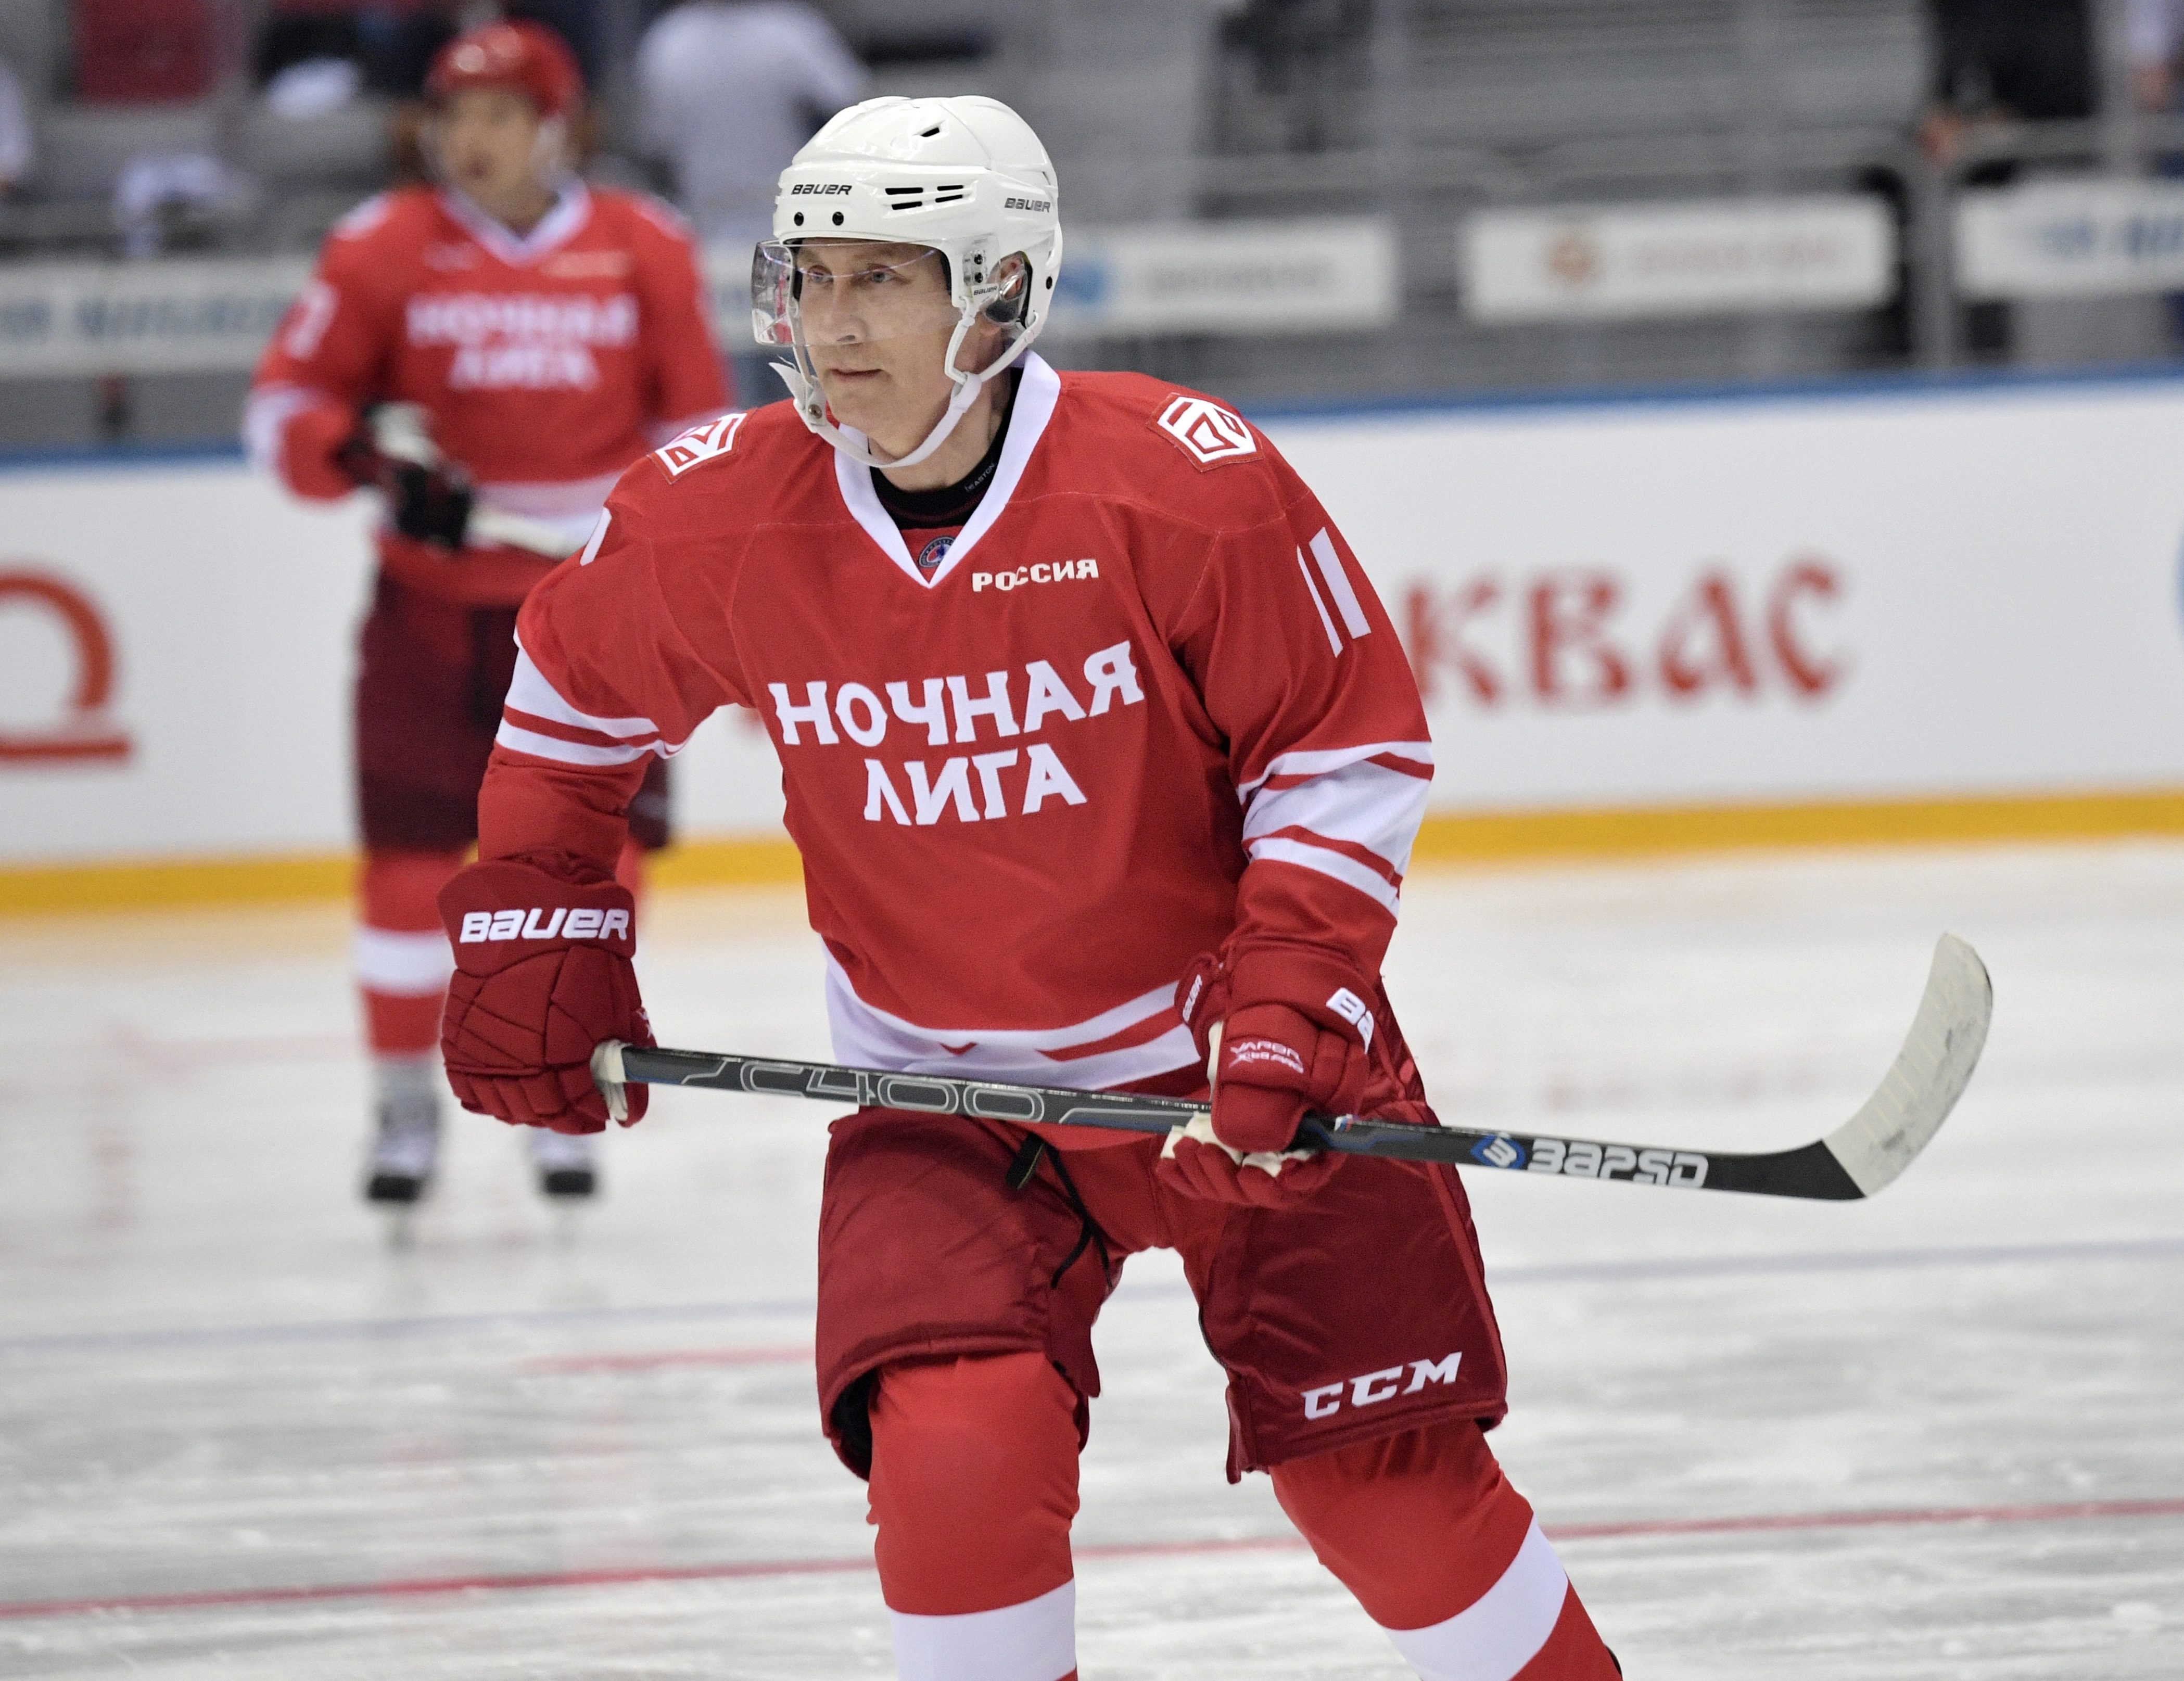 Putin Scores 5 Goals In Exhibition Hockey Game With Former Nhlers National Globalnews Ca